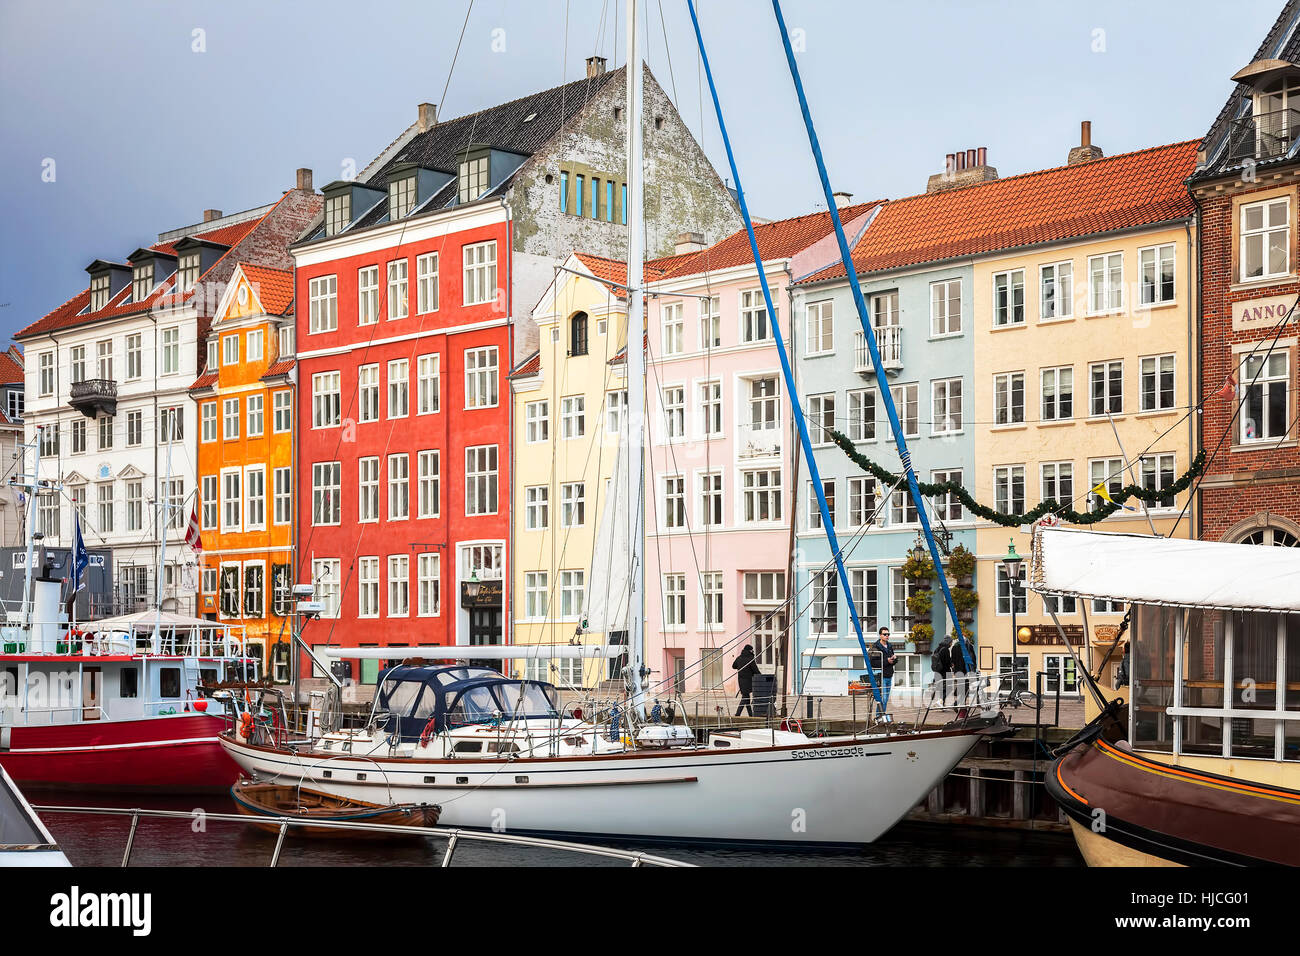 Ships and colourful buildings in the Nyhavn area of Copenhagen. - Stock Image